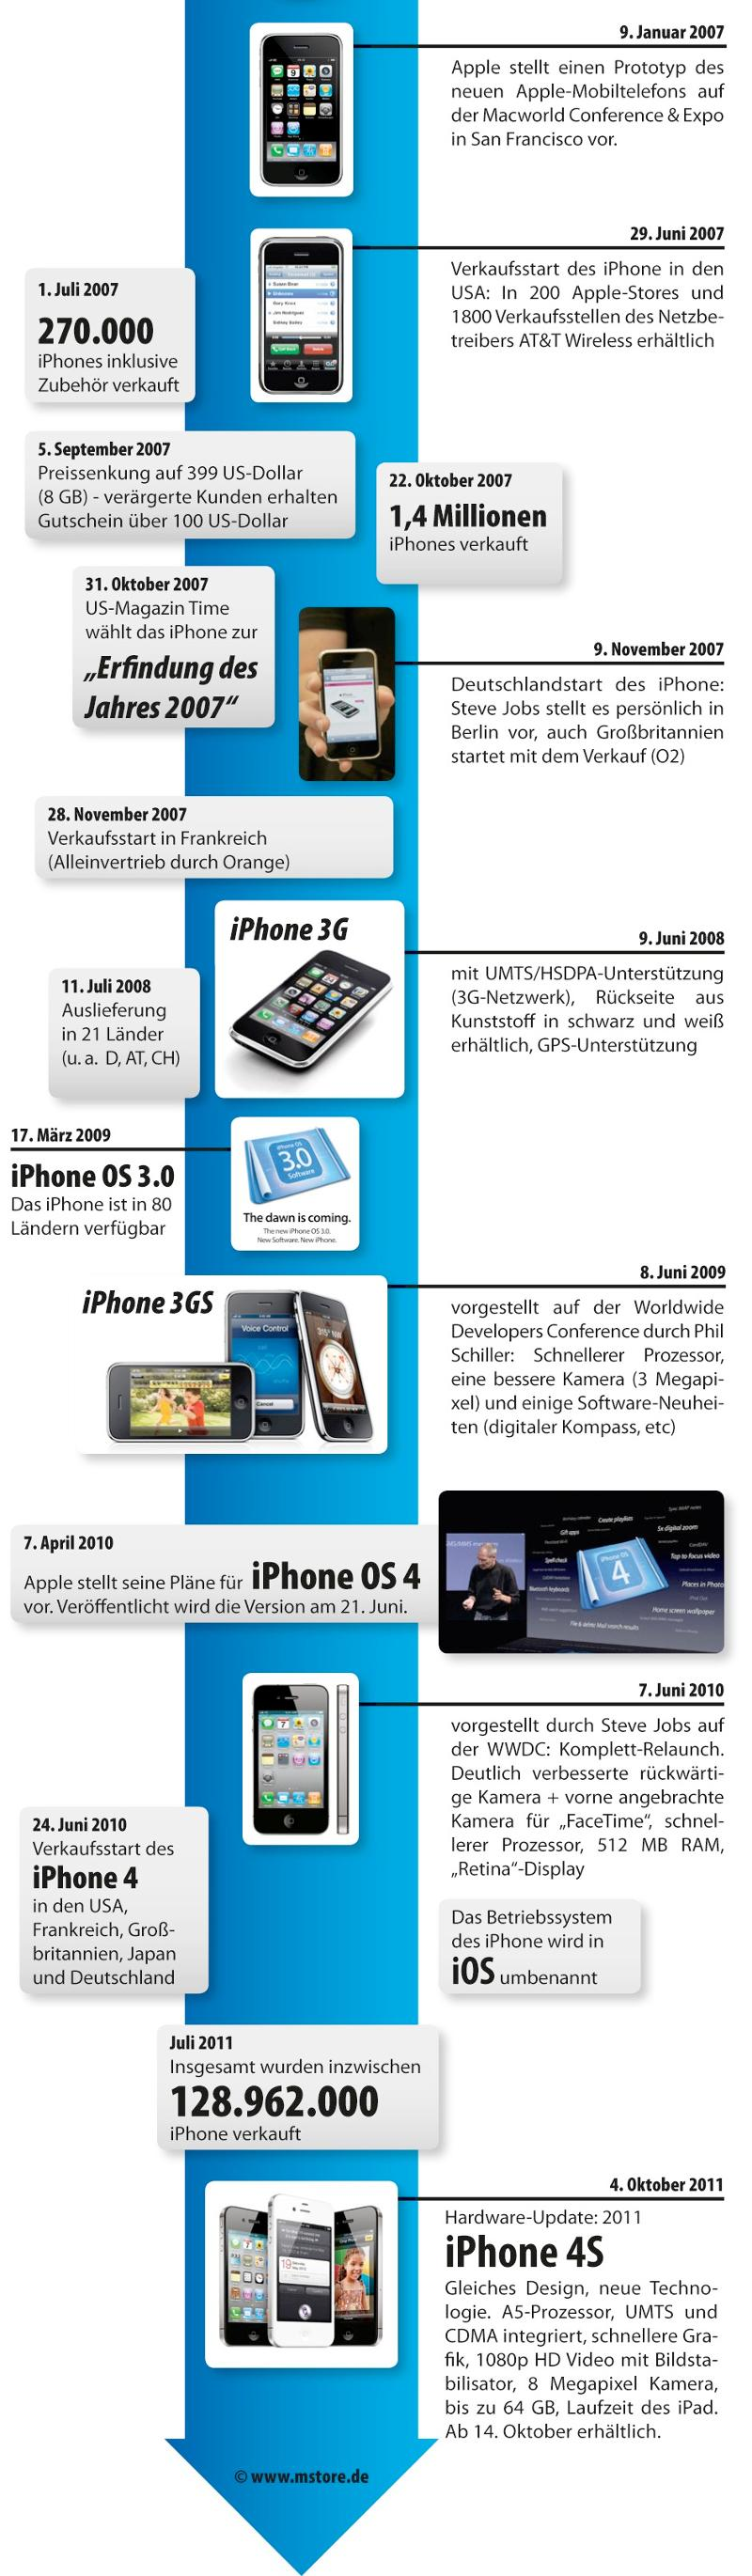 infografik_iphone-historie